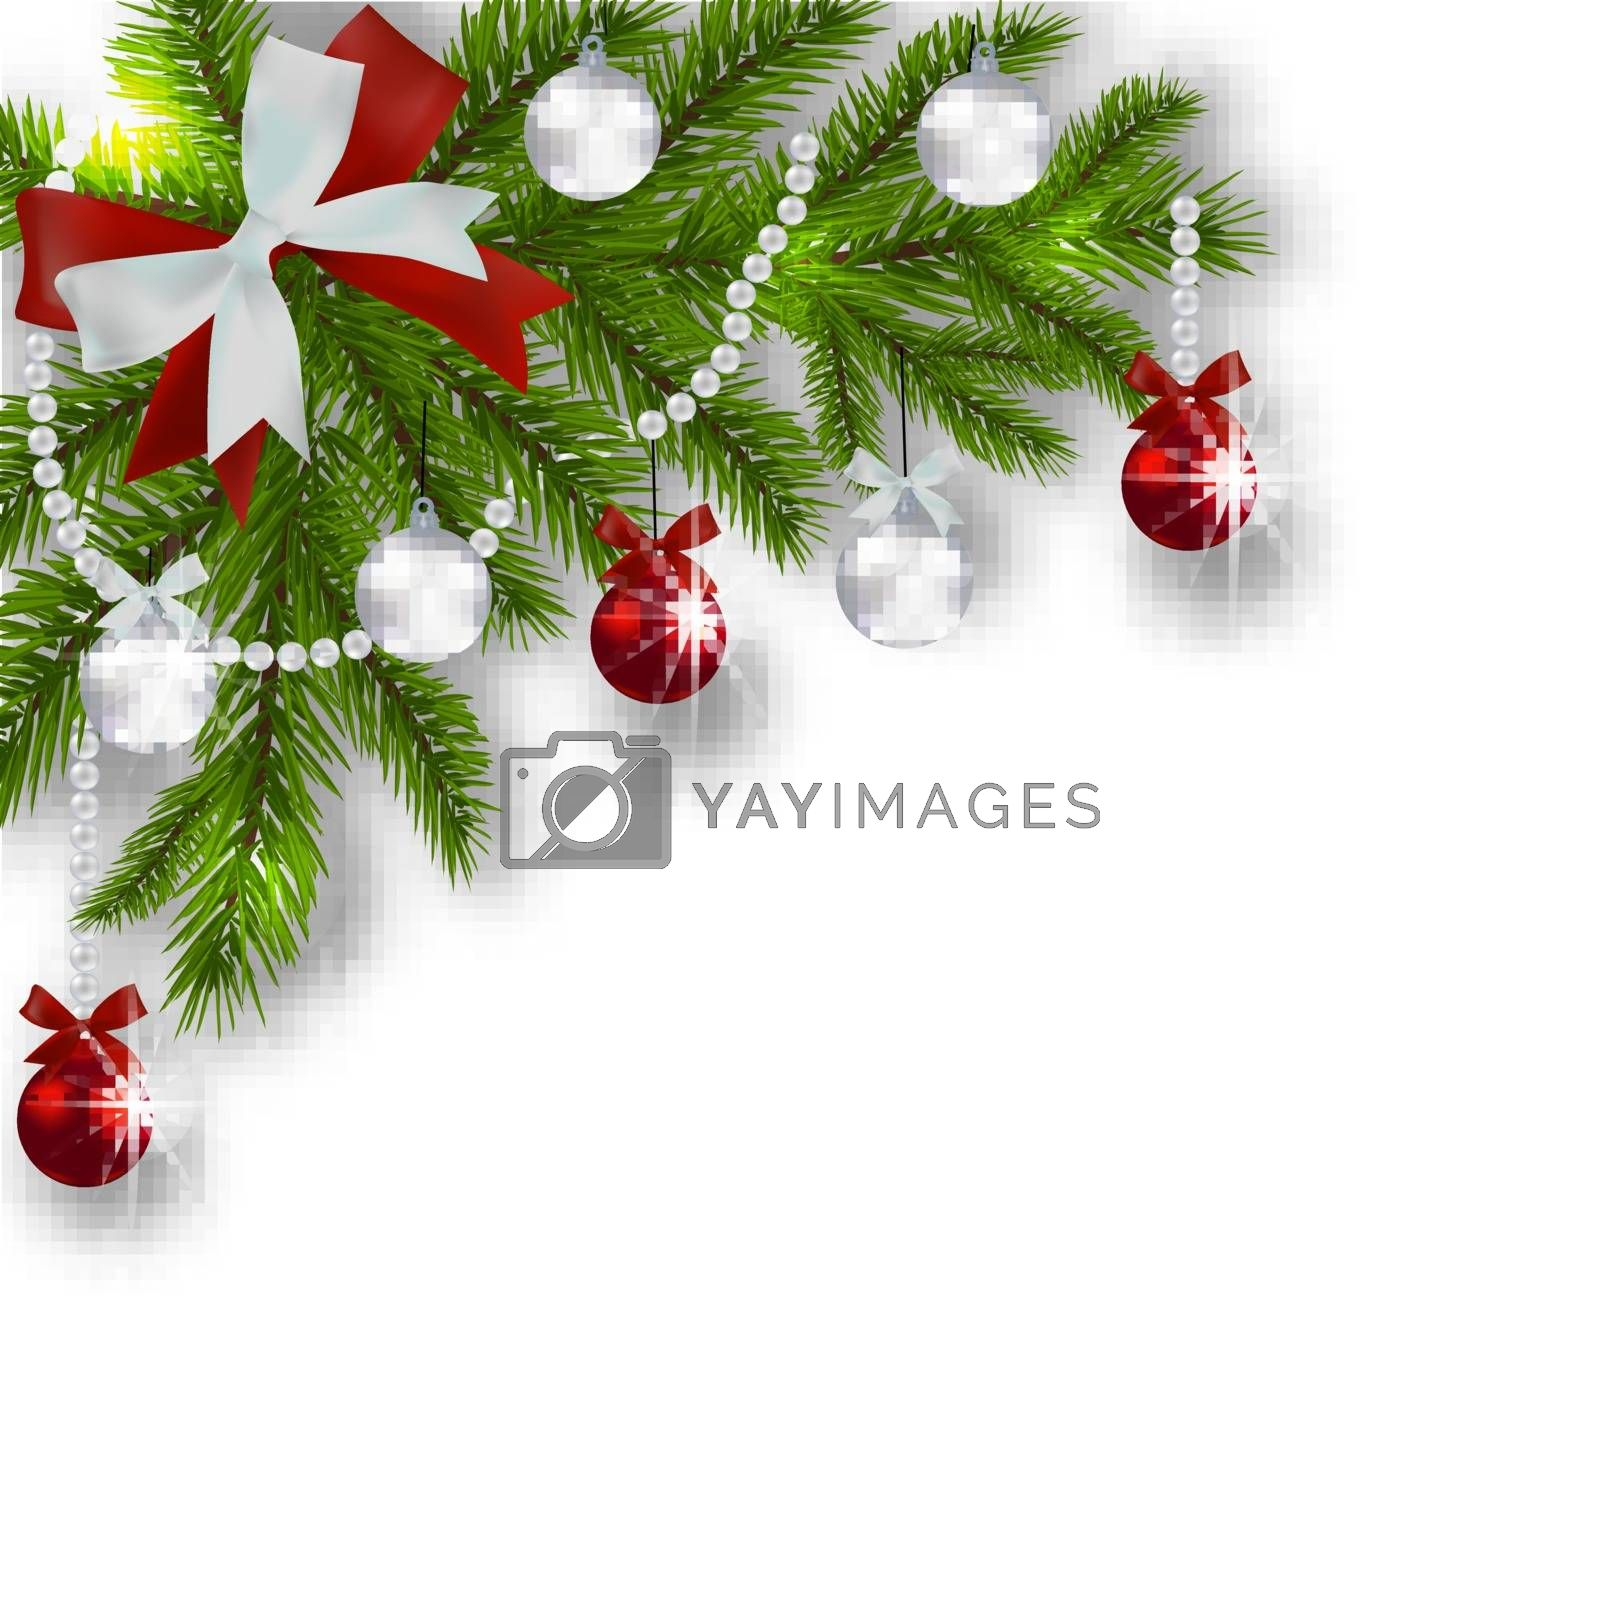 Christmas card. Green branches of a Christmas tree with silver, red balls and ribbon on a white background. Angular with a shadow. Christmas decorations. Vector illustration